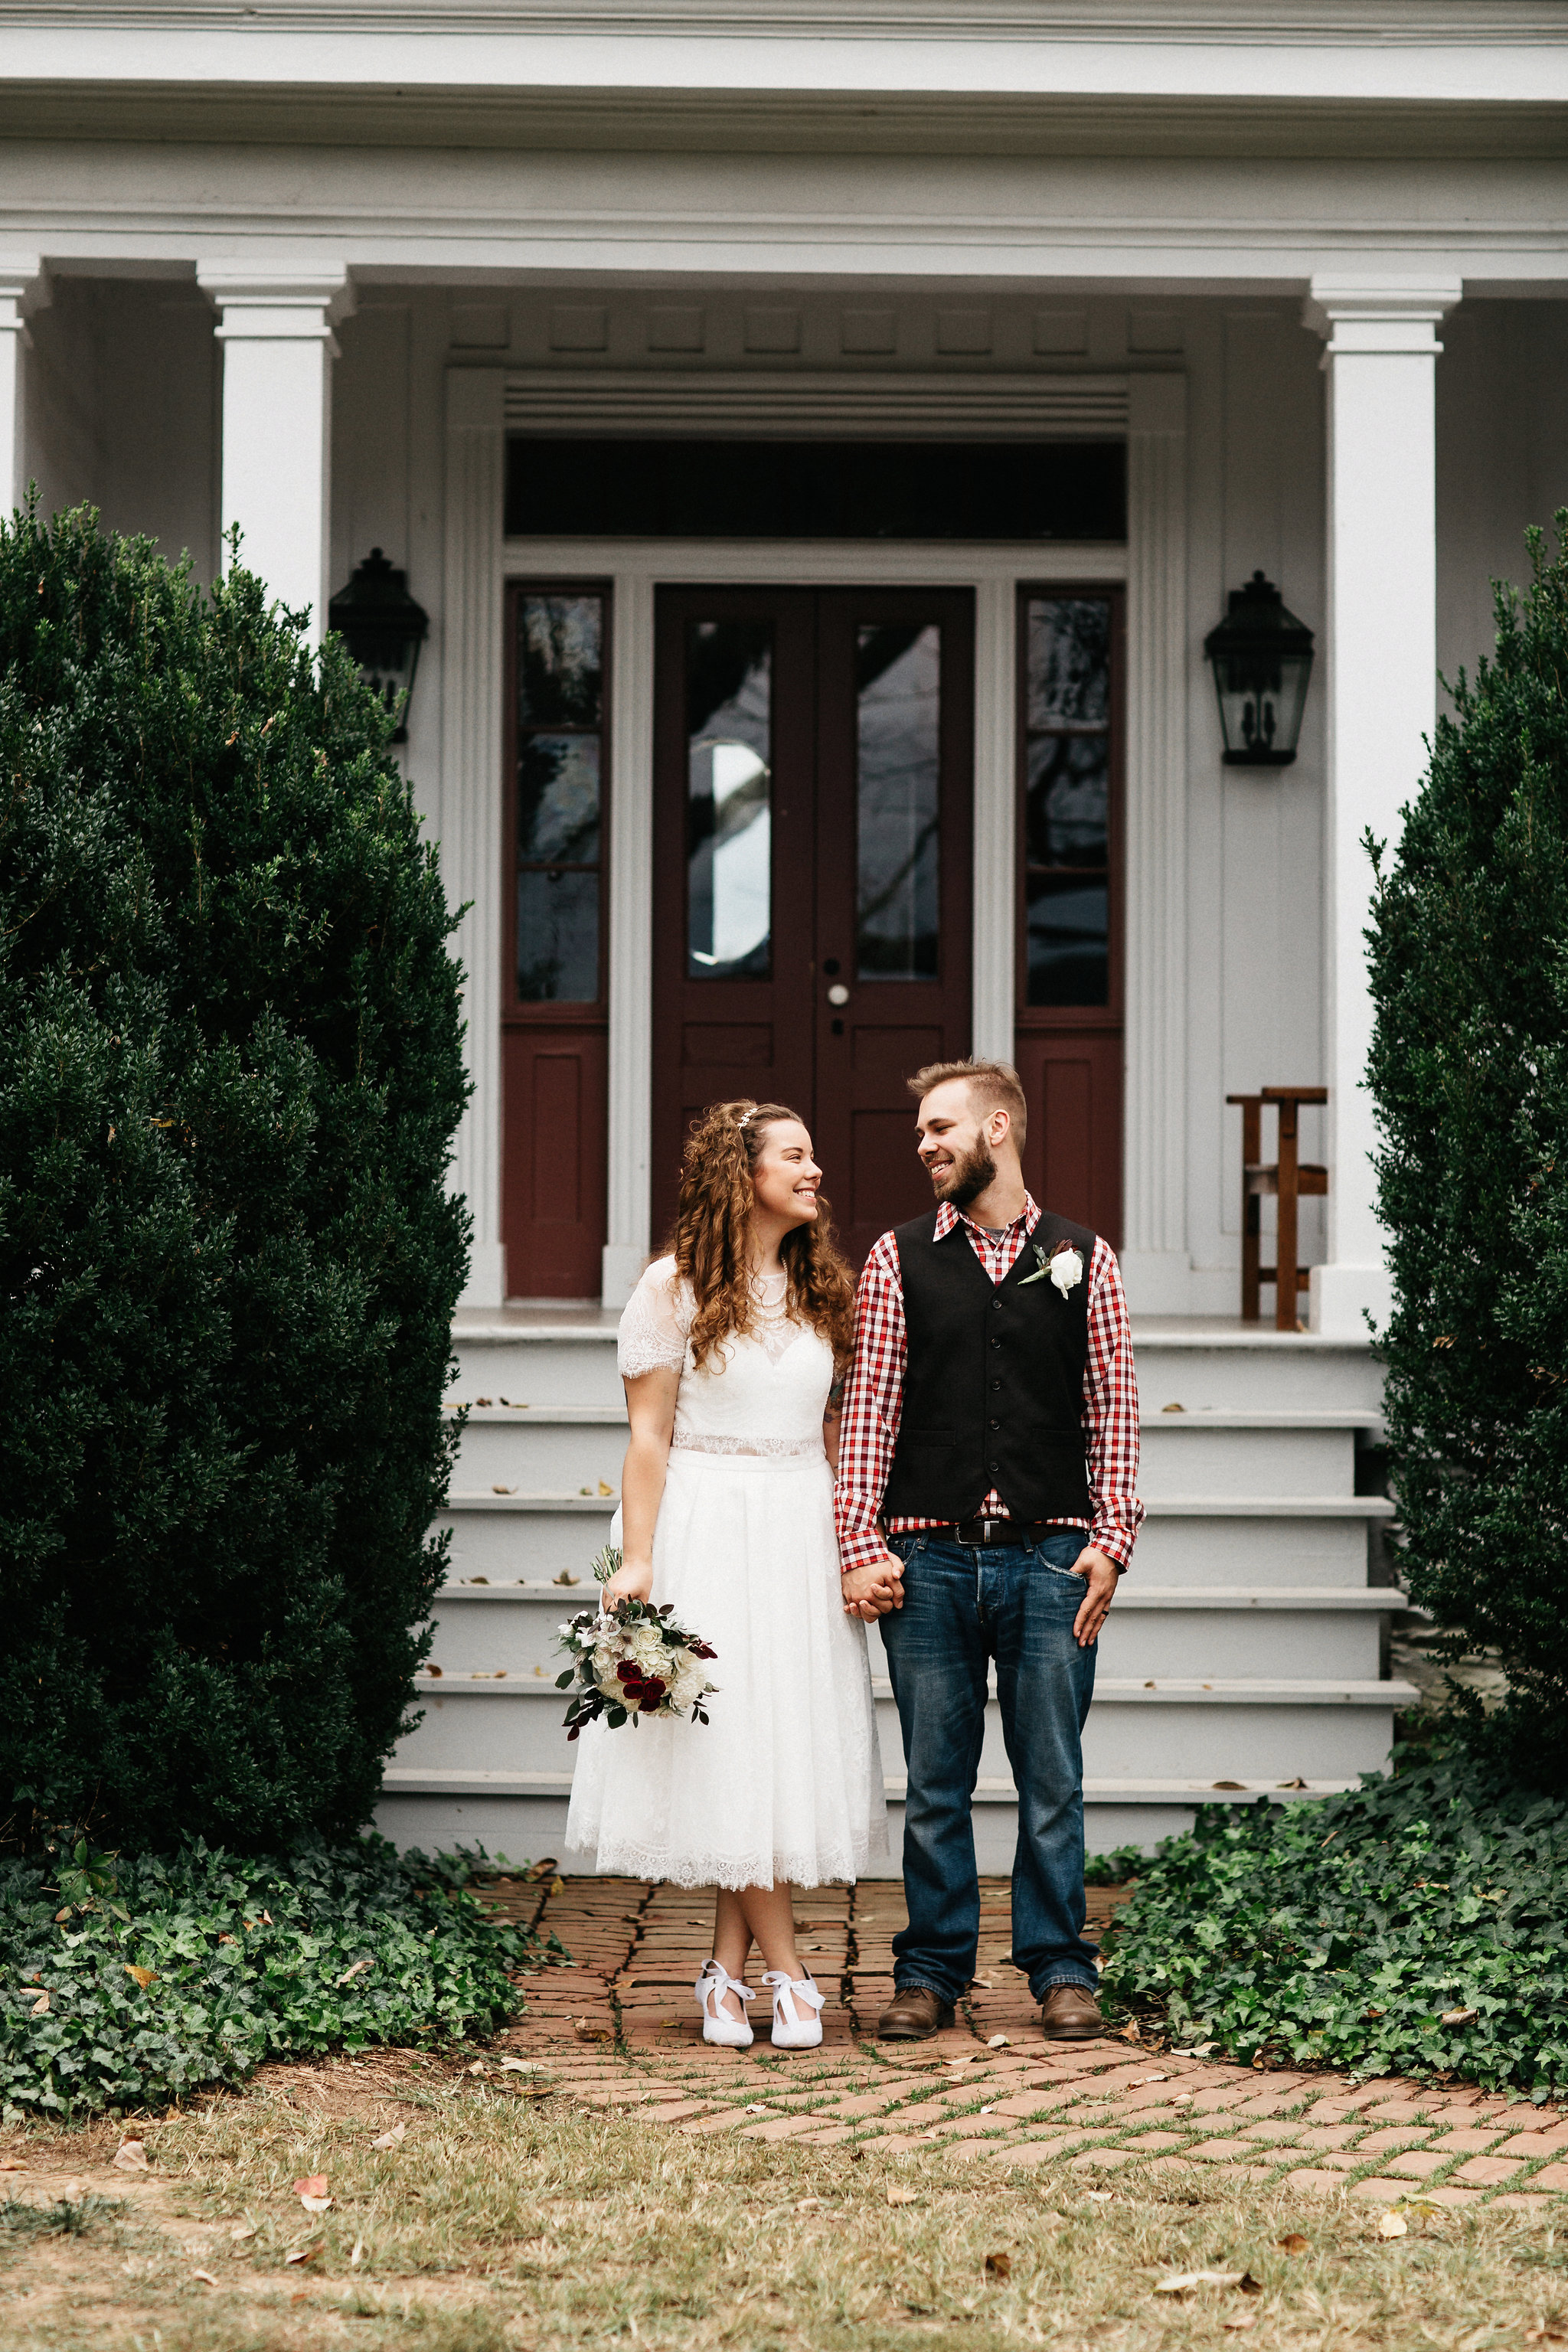 Caitlin&CodyMarried2017-11-03at19.19.38PM45.jpg